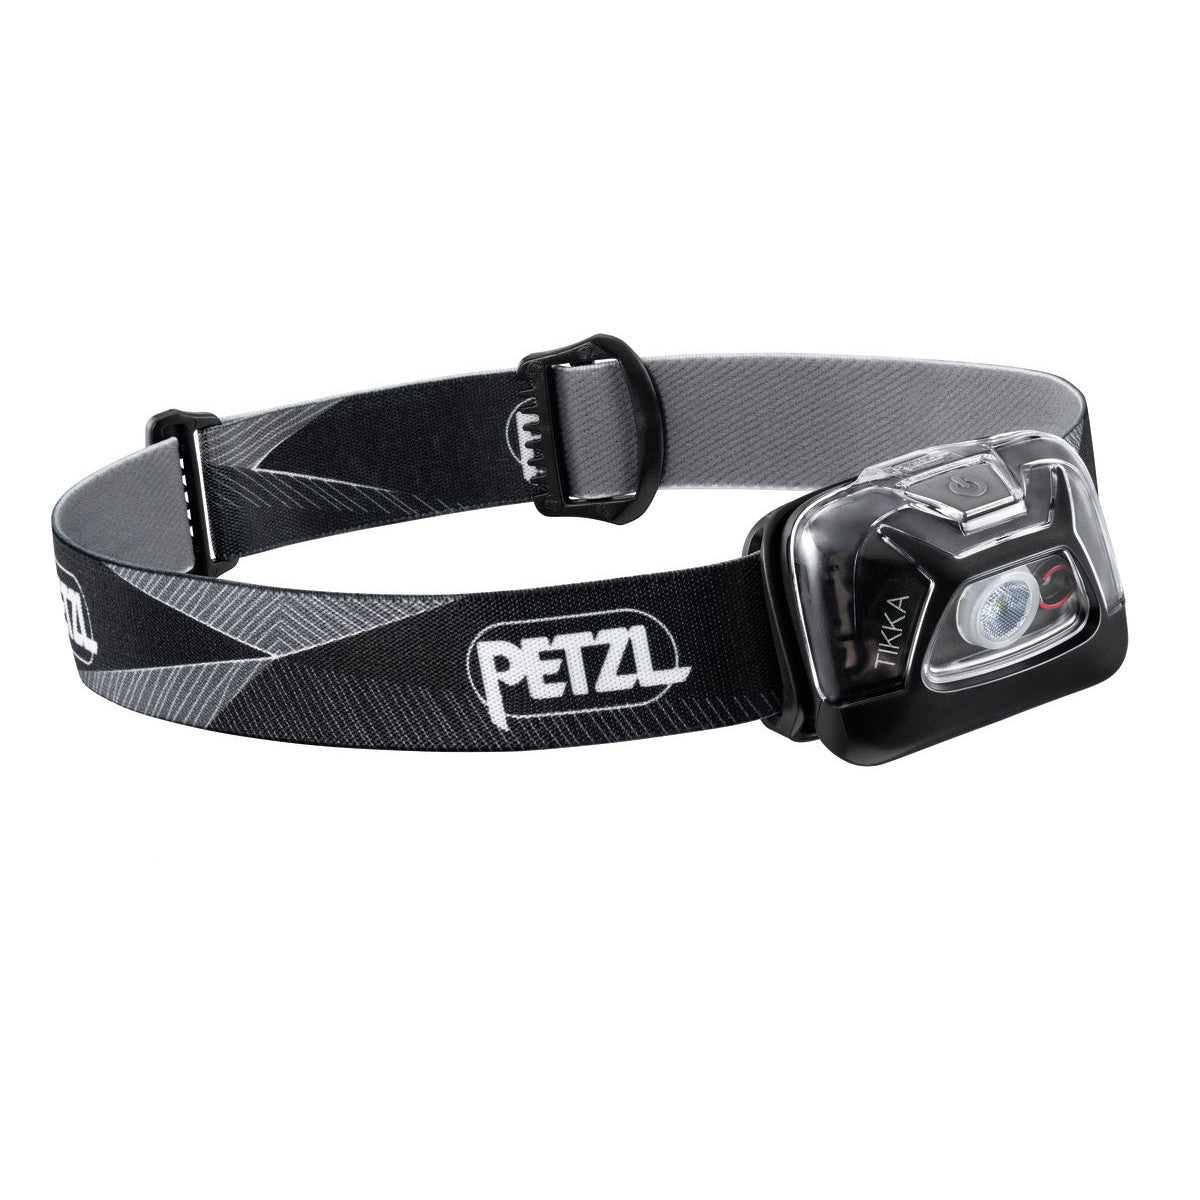 Petzl Tikka Head torch, front/side view in Black/grey colours